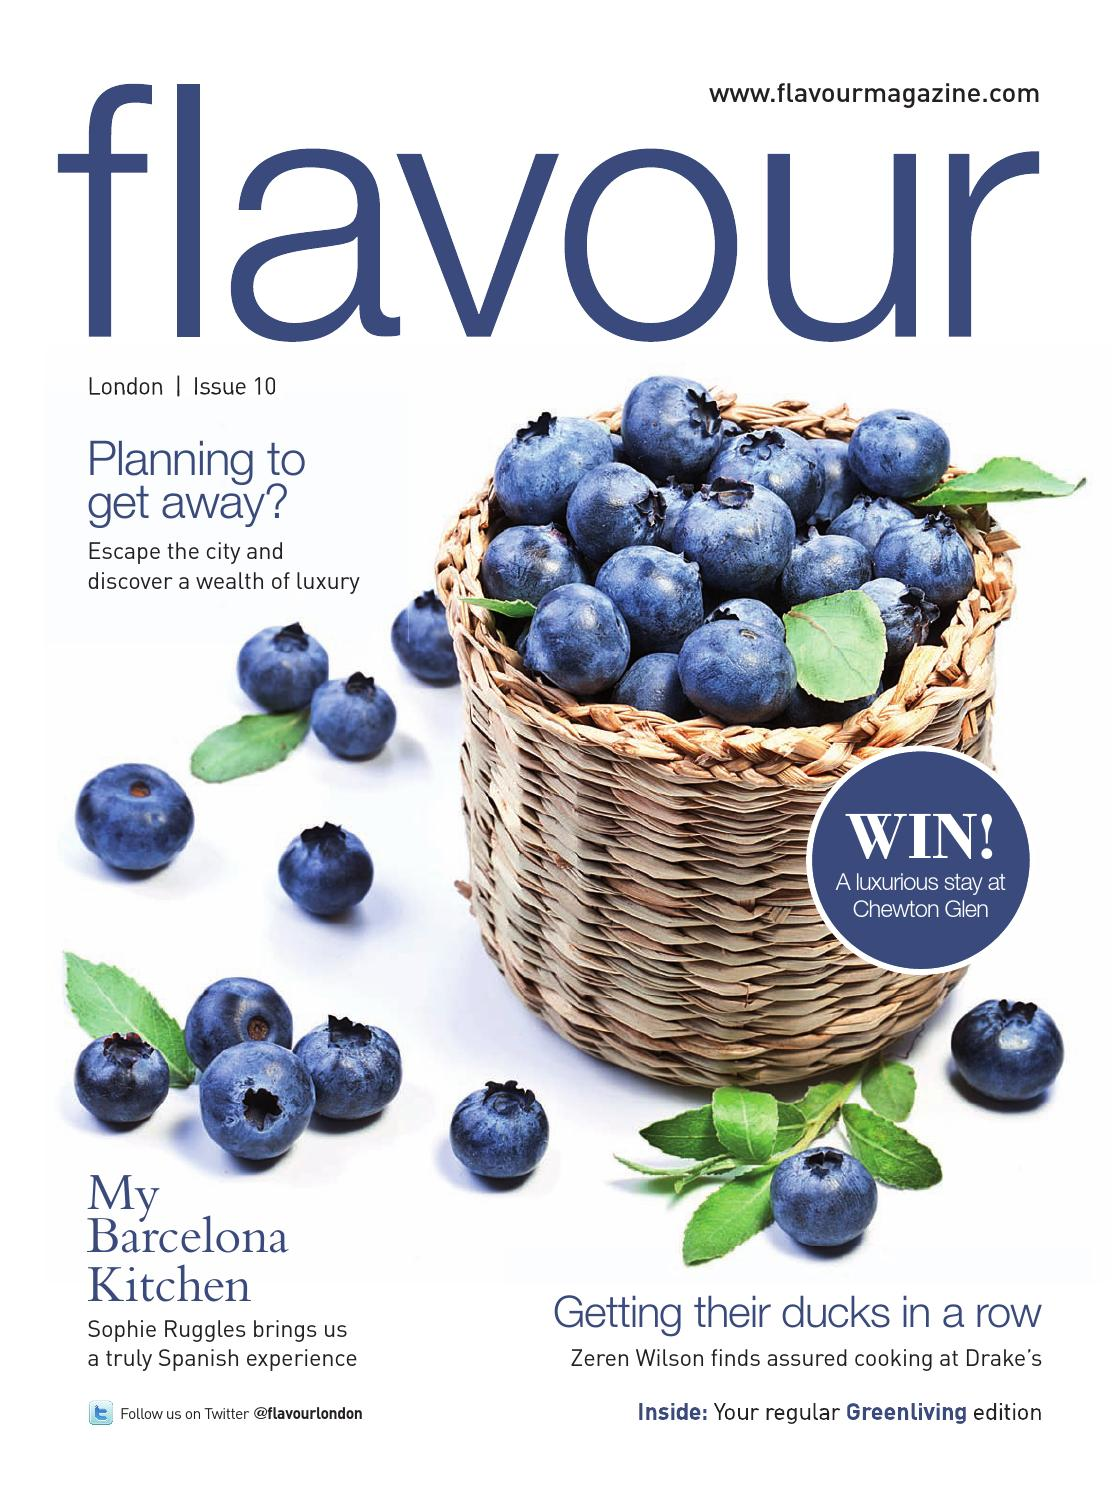 Flavour London issue 10 by Flavour Magazine - issuu